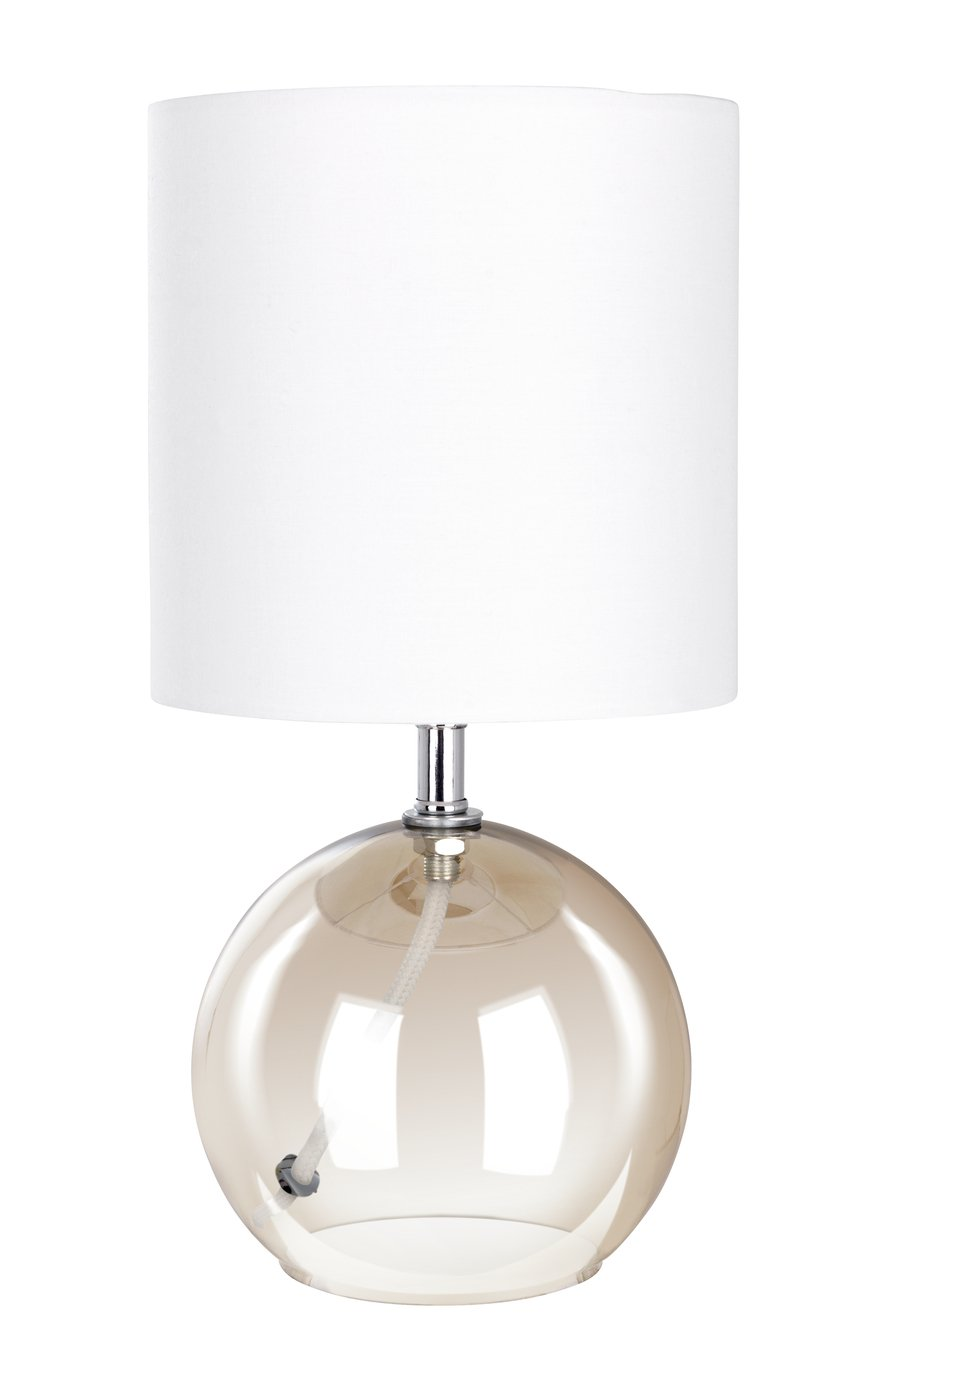 Argos Home Glass Table Lamp - Amber